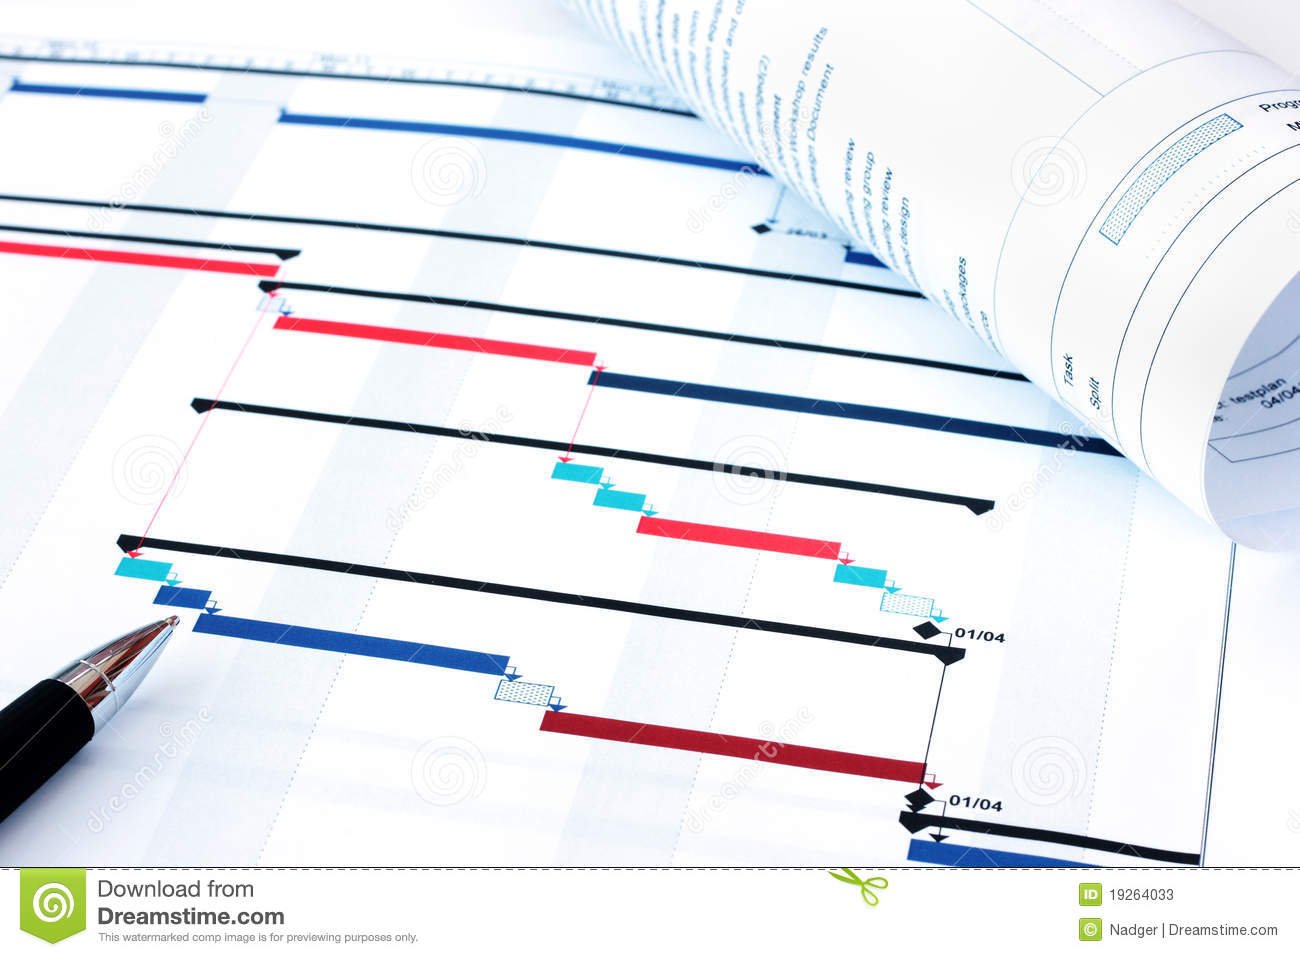 Project planning gantt chart stock photos image 19264033 for Project planner hd